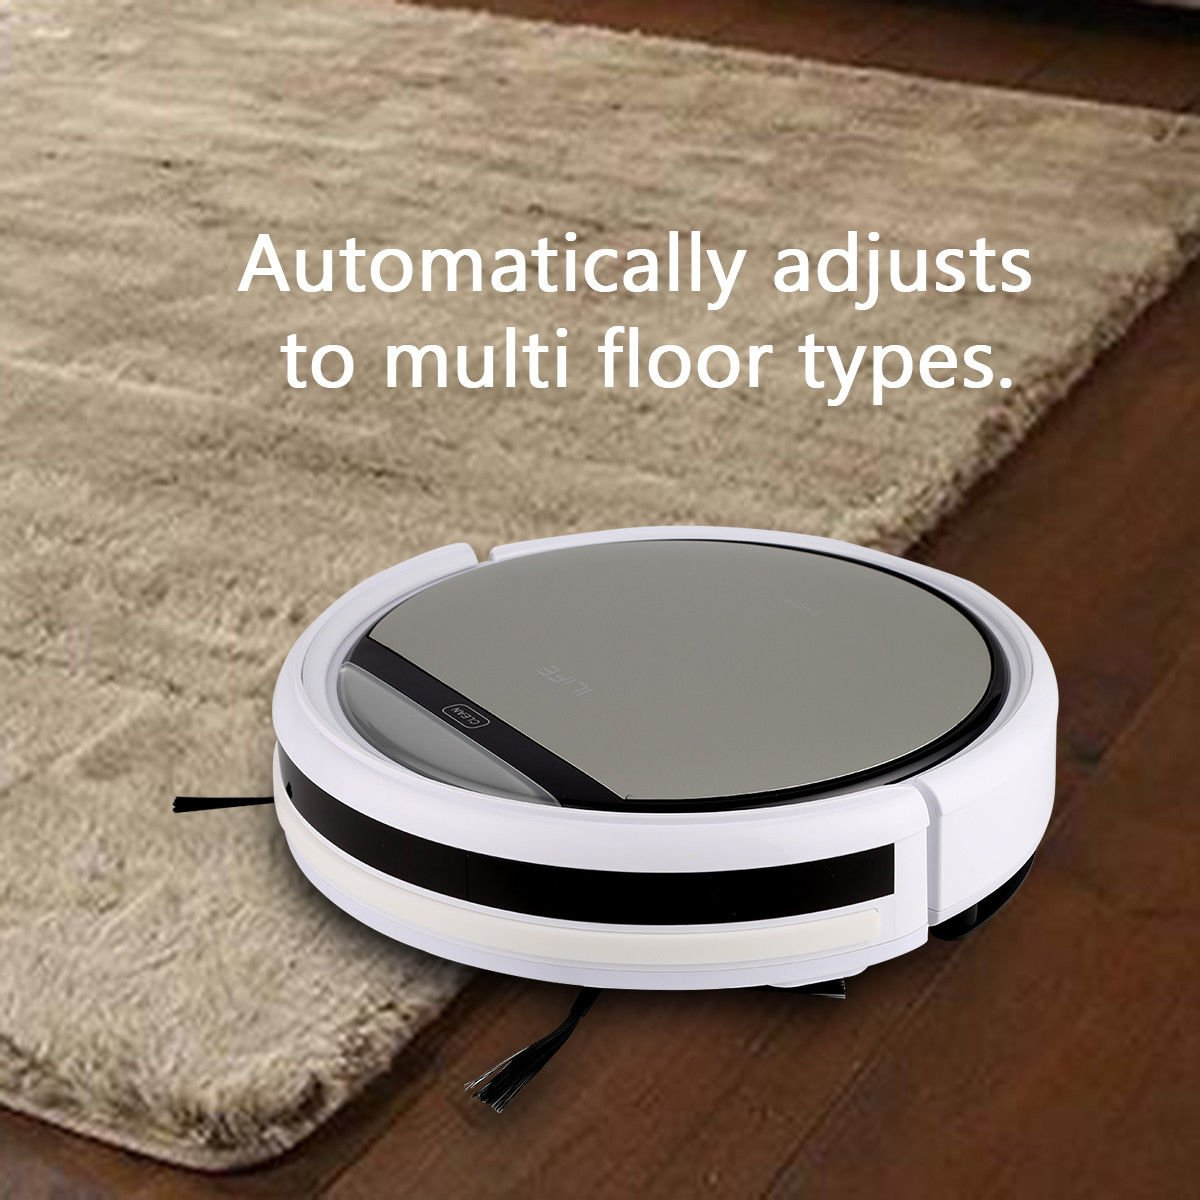 Cleaner Smart Robot Vacuum Cleaning Floor Auto Dust Microfiber Robotic Sweeper Mop Automatic by Alek...Shop (Image #5)